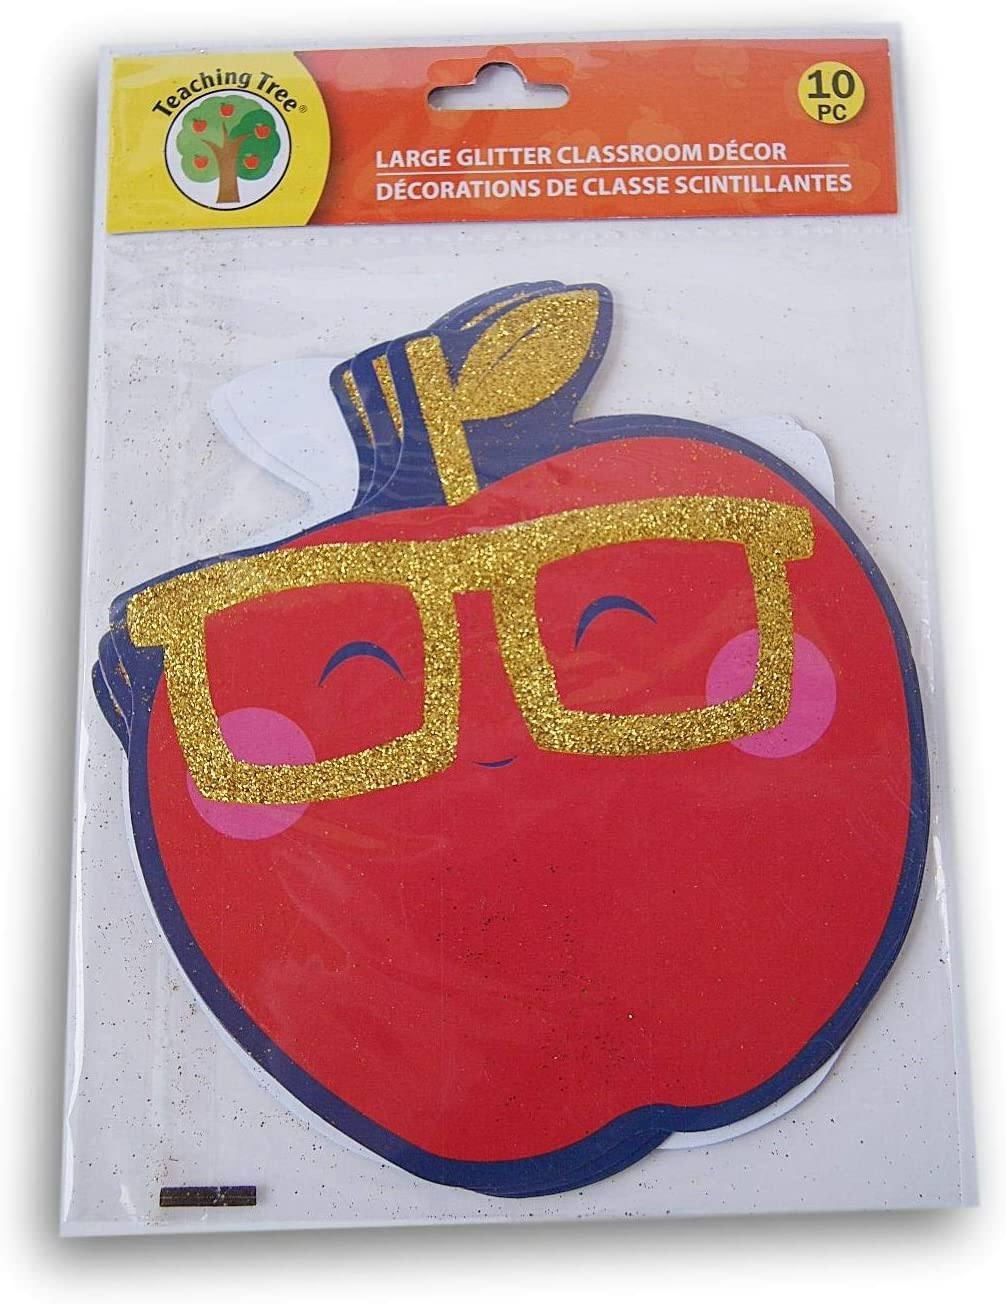 Smiling Glitter Apple Classroom Decor Embossed Paper Cut-Outs - 10 Count